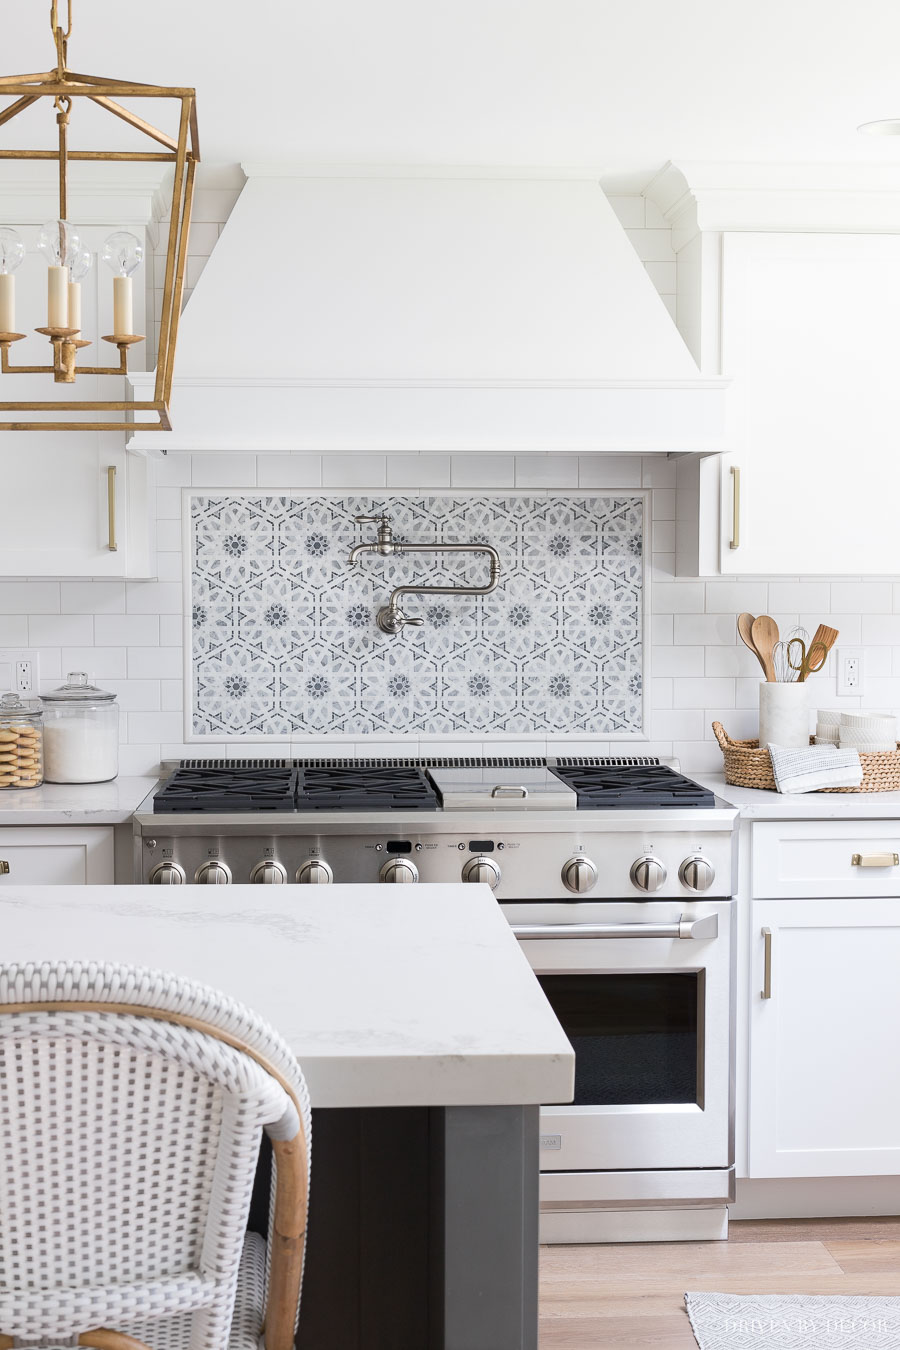 I am in LOVE with that mosaic tile accent behind the range! And that pot filler! All sources provided in the post!